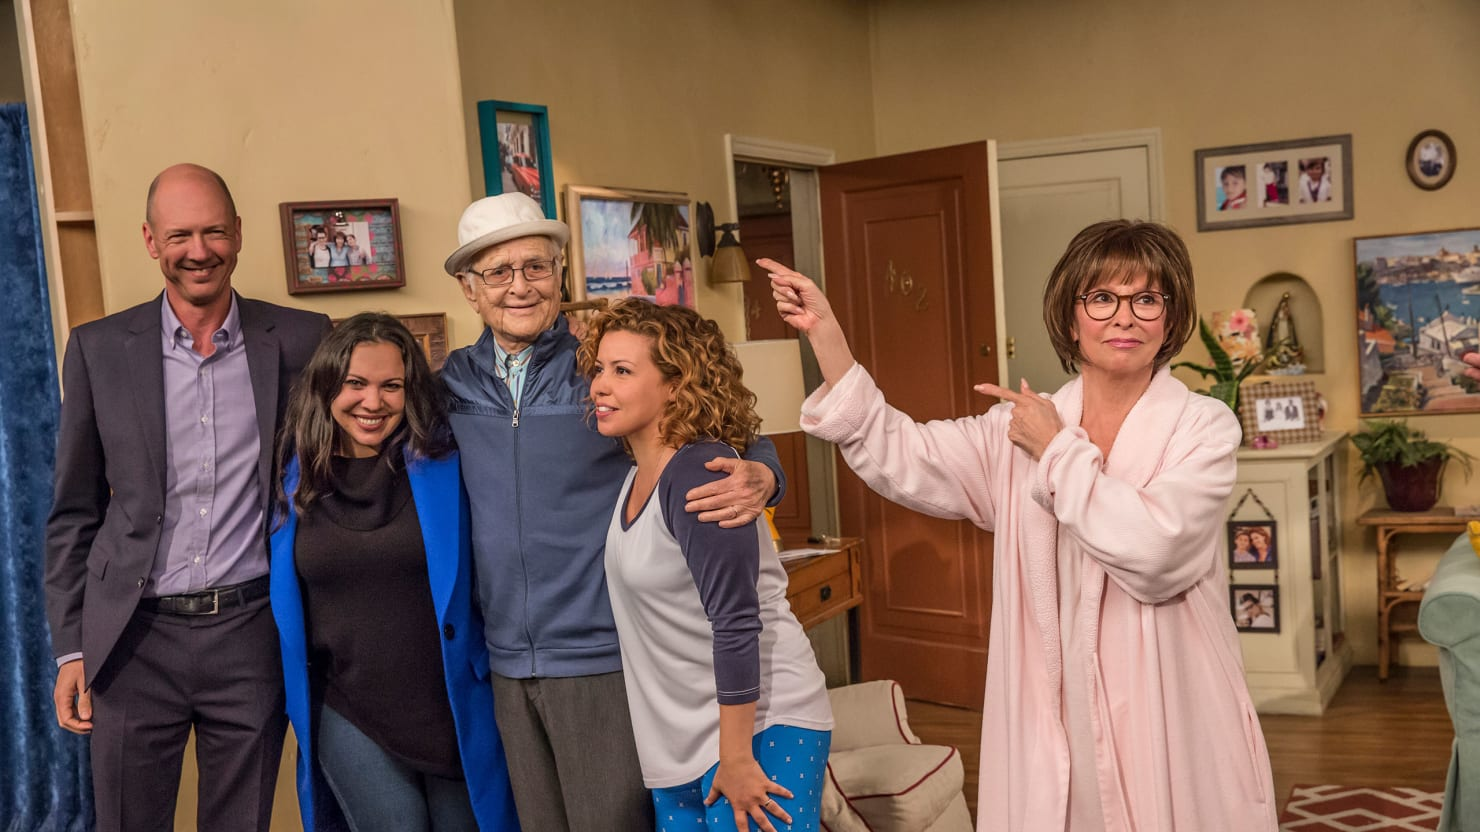 Norman Lears One Day At a Time is Coming Back to TV